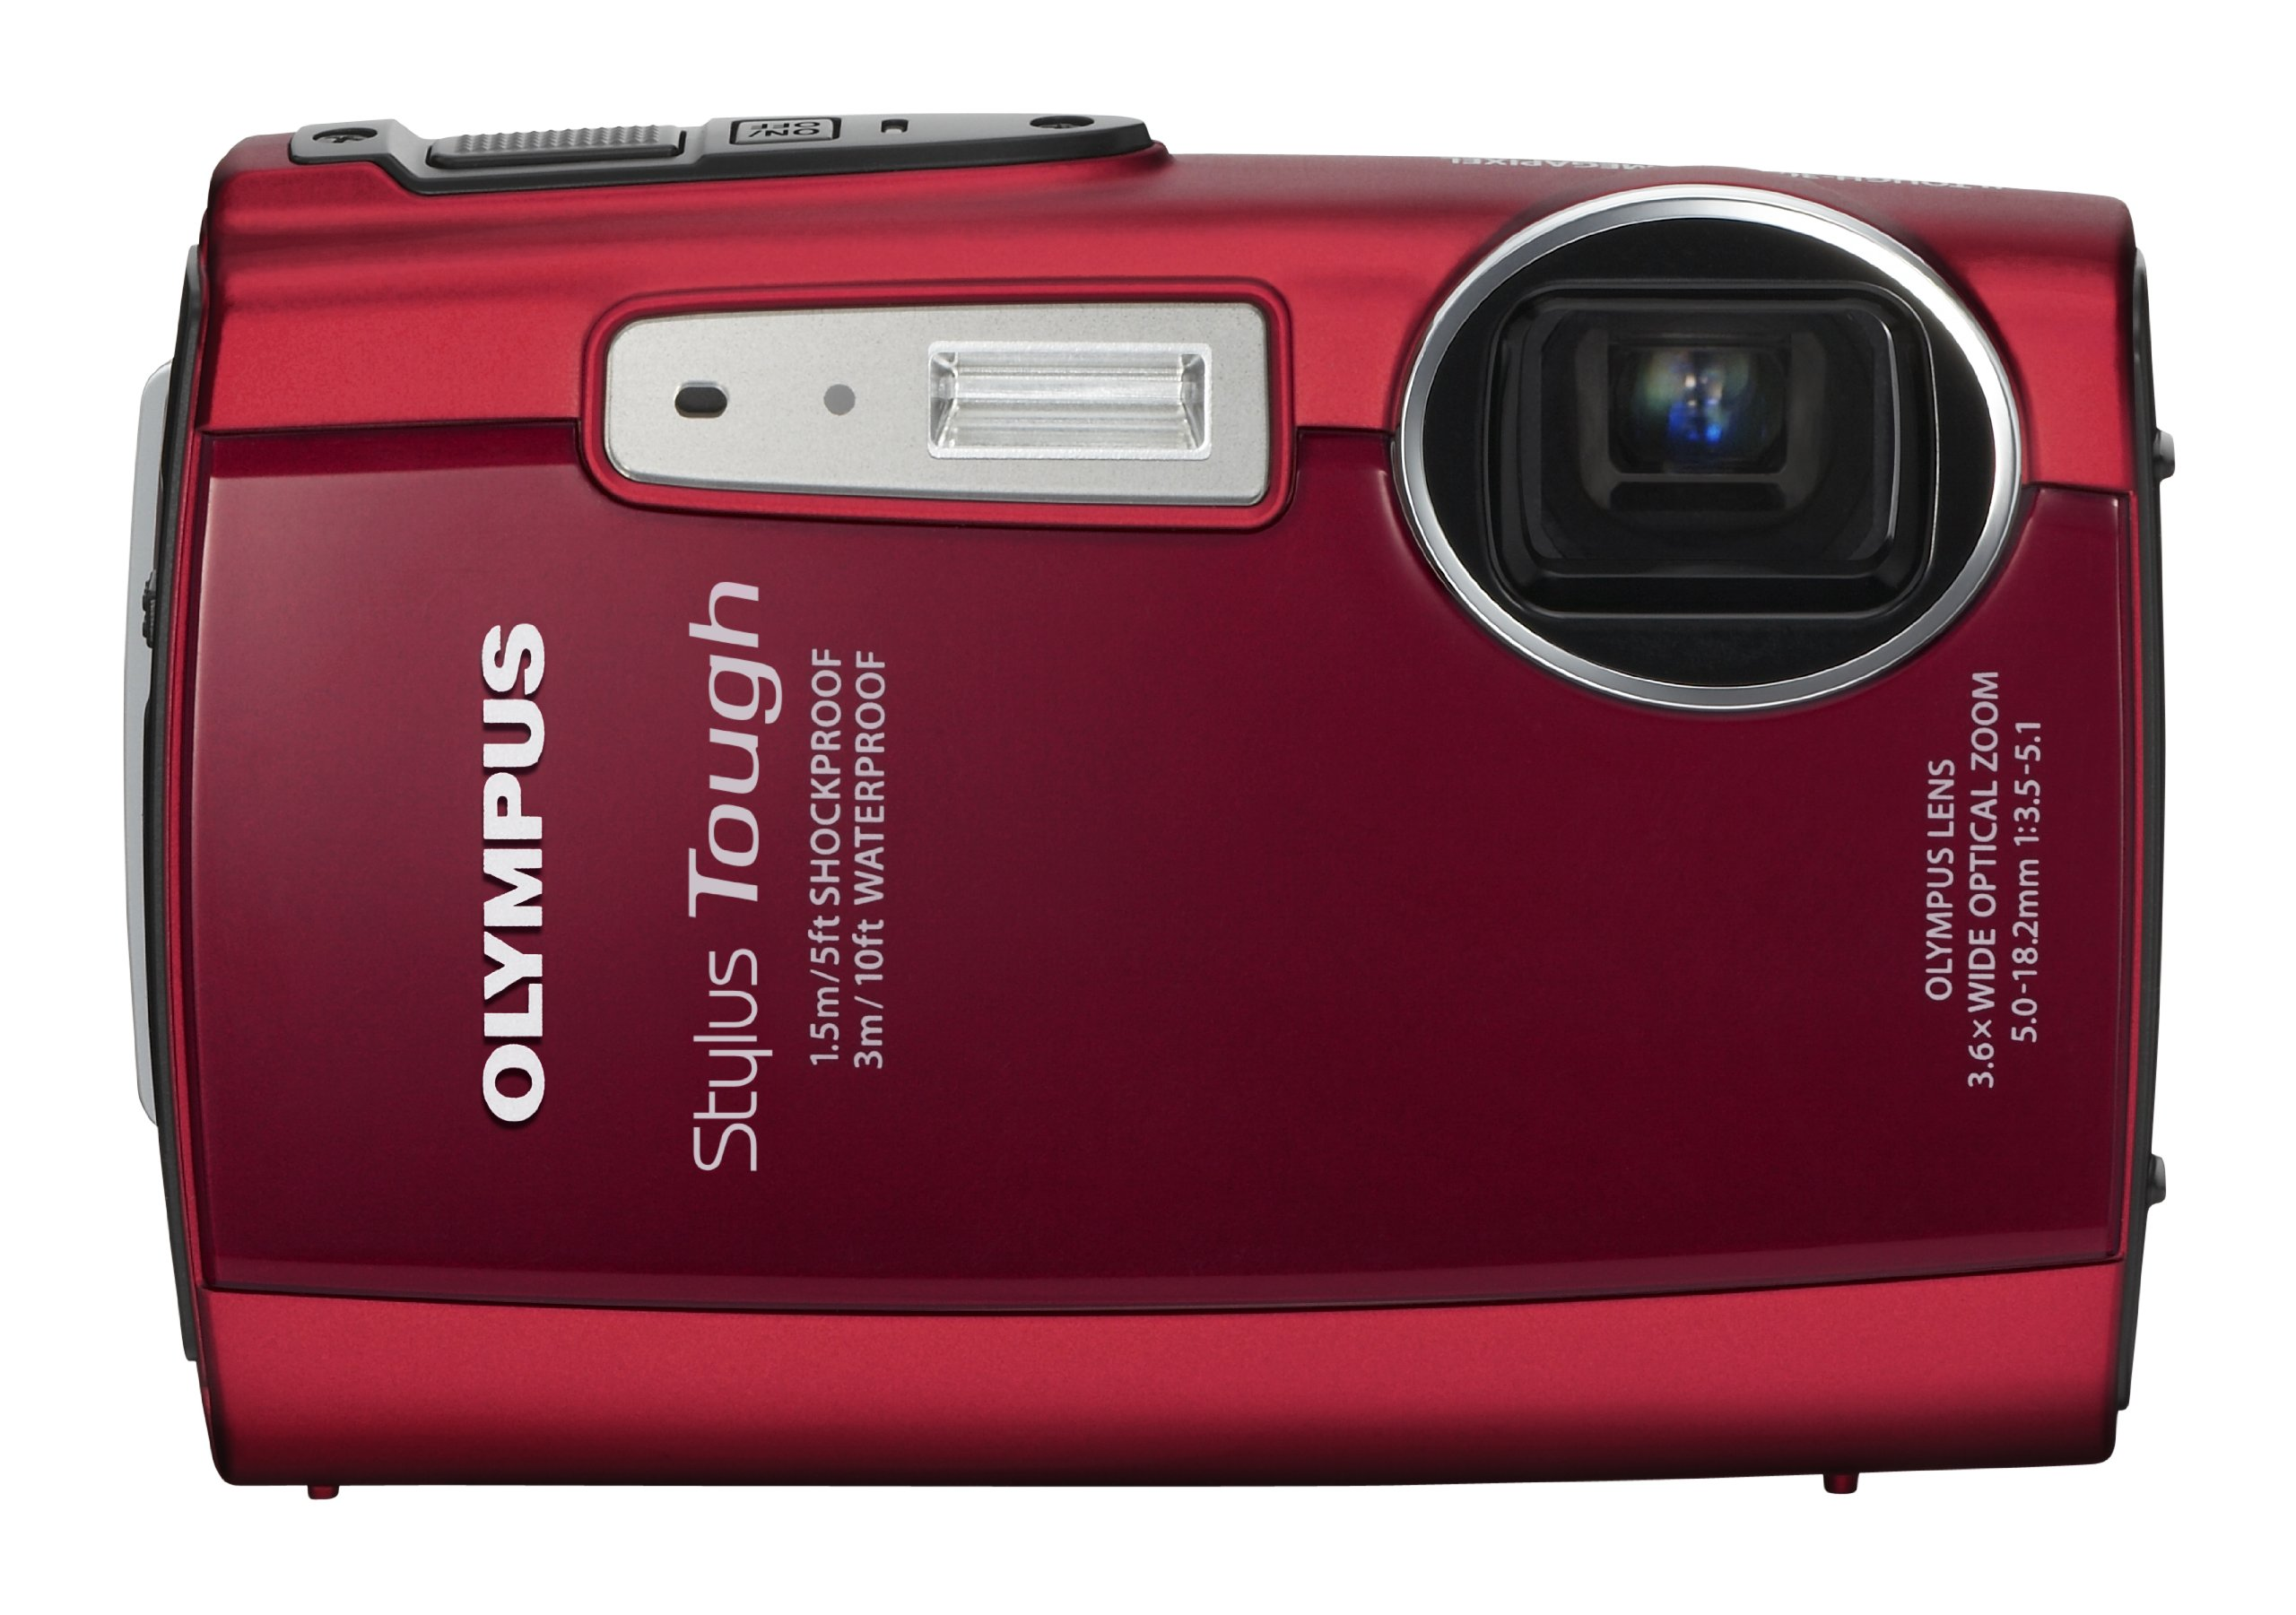 Olympus Stylus Tough 3000 12 MP Digital Camera with 3.6x Wide Angle Zoom and 2.7-inch LCD (Red) (Old Model) by Olympus (Image #1)